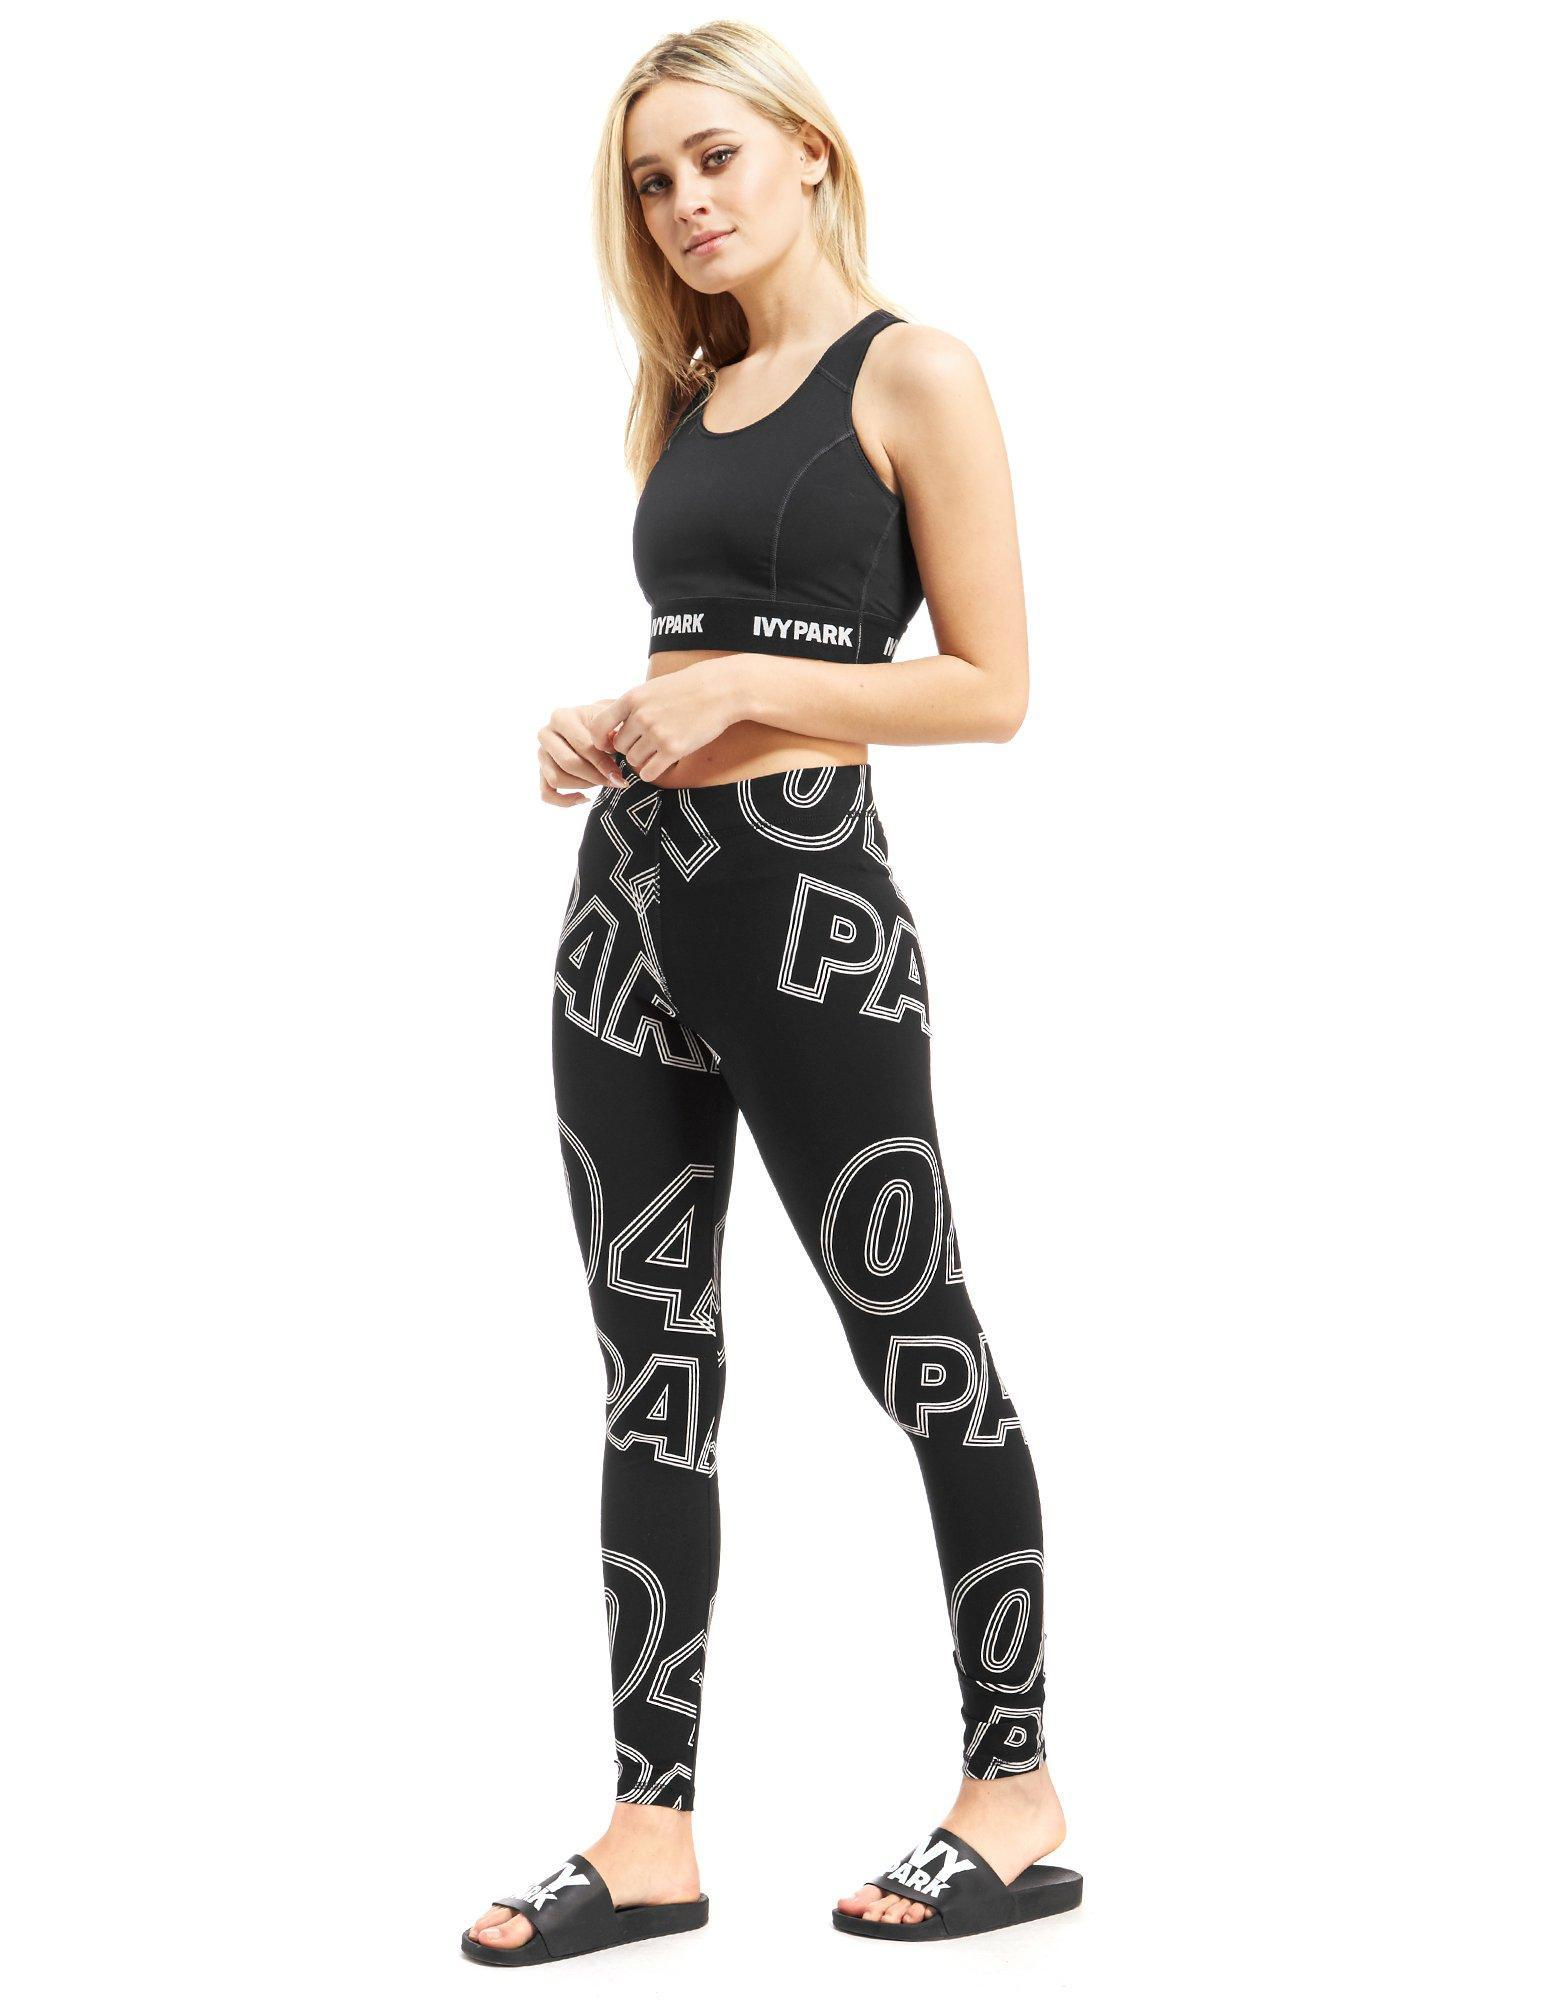 Ivy Park Synthetic All-over Print Leggings in Black